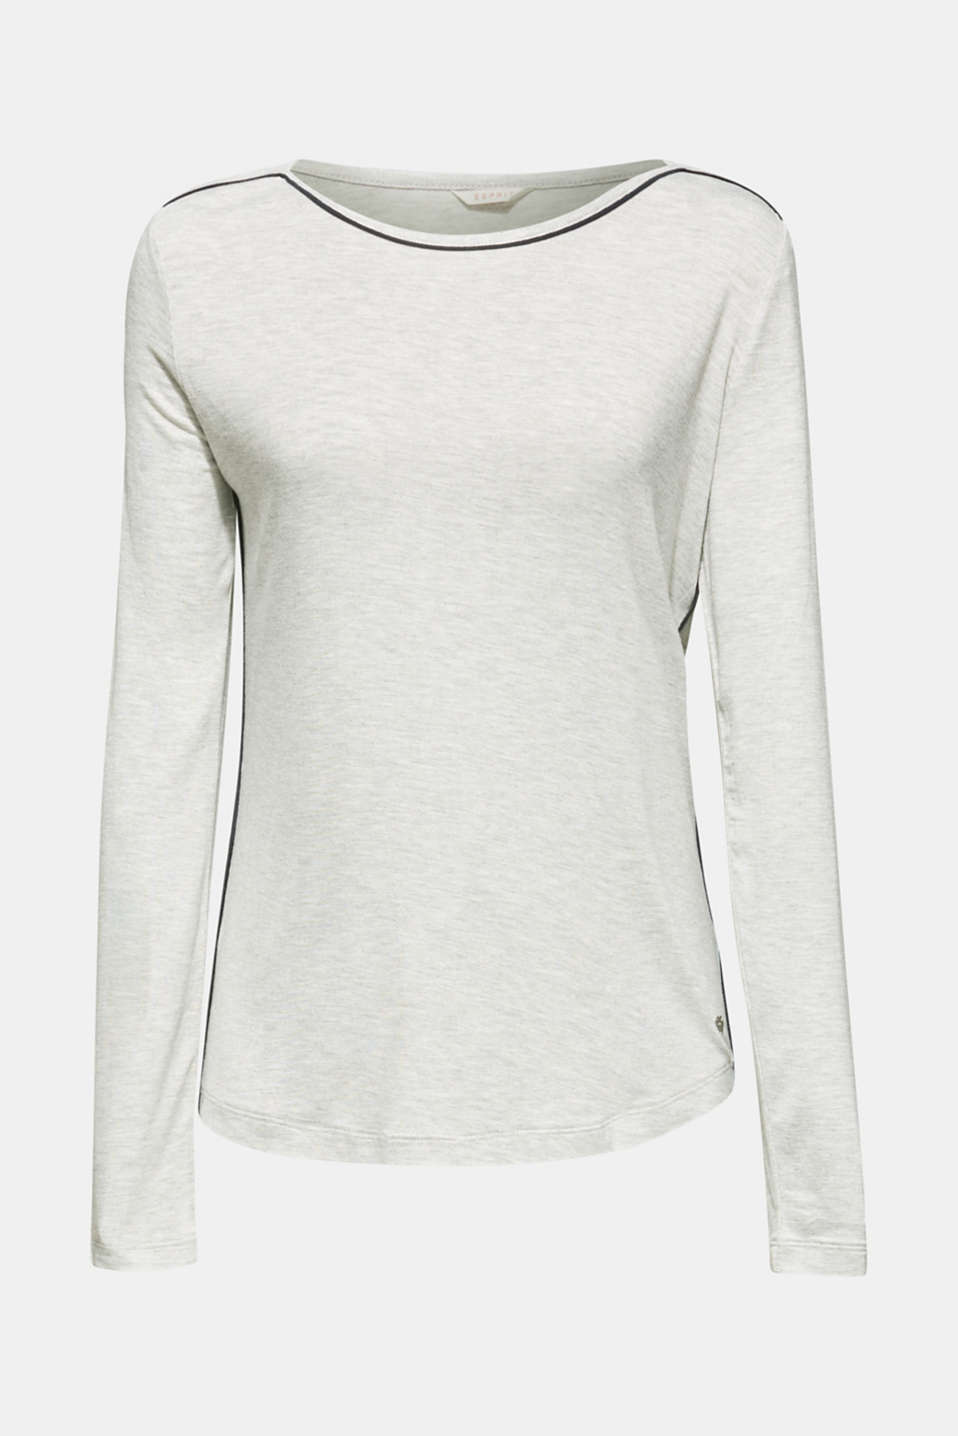 LIGHT GREY melange long sleeve top, LIGHT GREY, detail image number 6